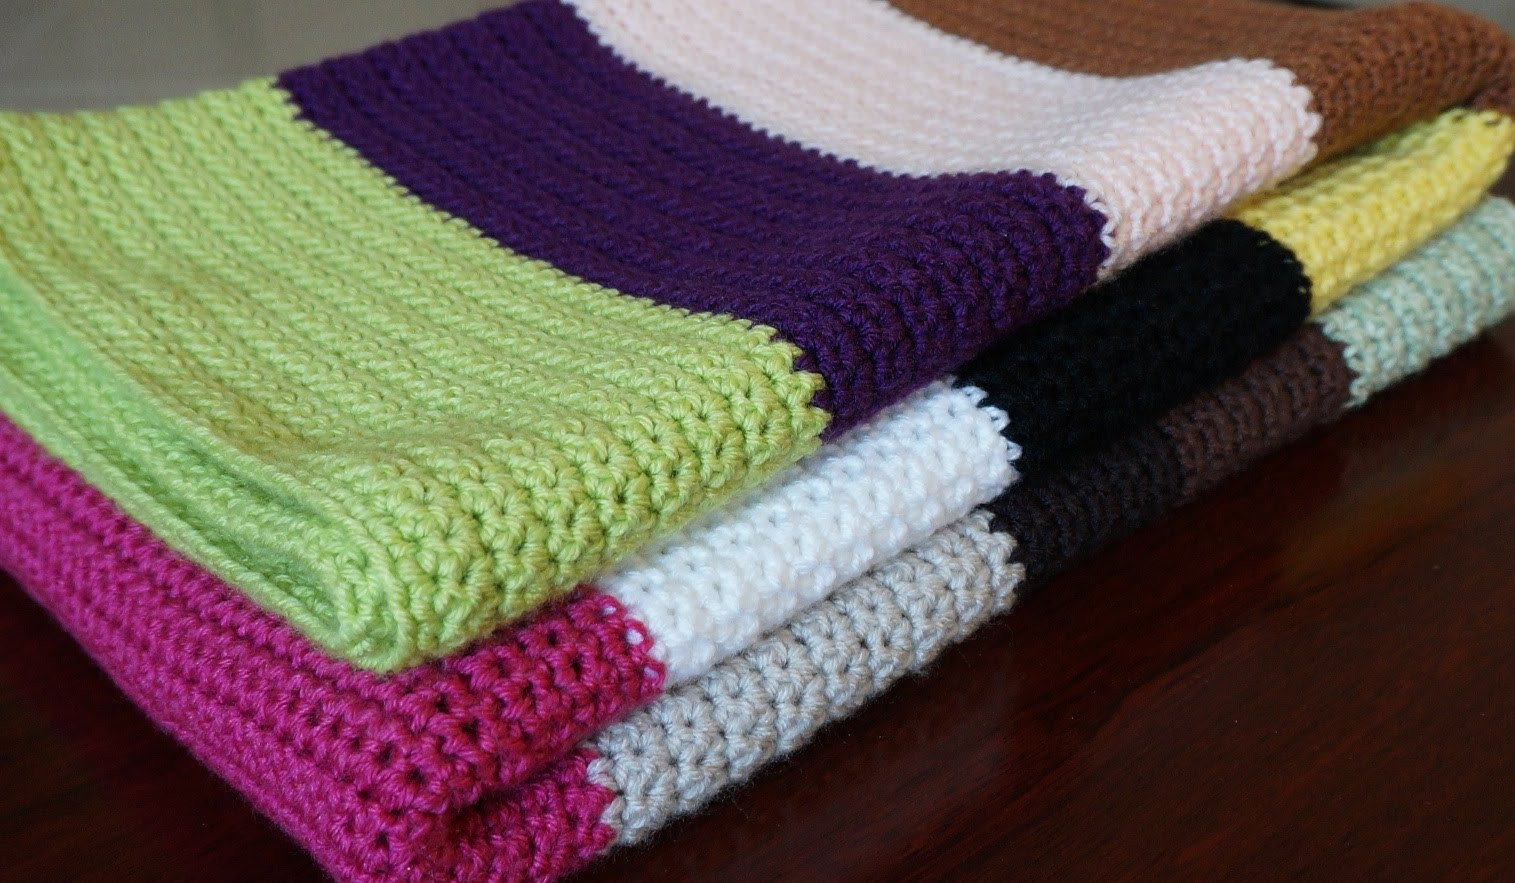 Inspirational [video Tutorial] Really Simple Single Crochet Baby Blanket Simple Crochet Baby Blanket Of Marvelous 48 Pictures Simple Crochet Baby Blanket